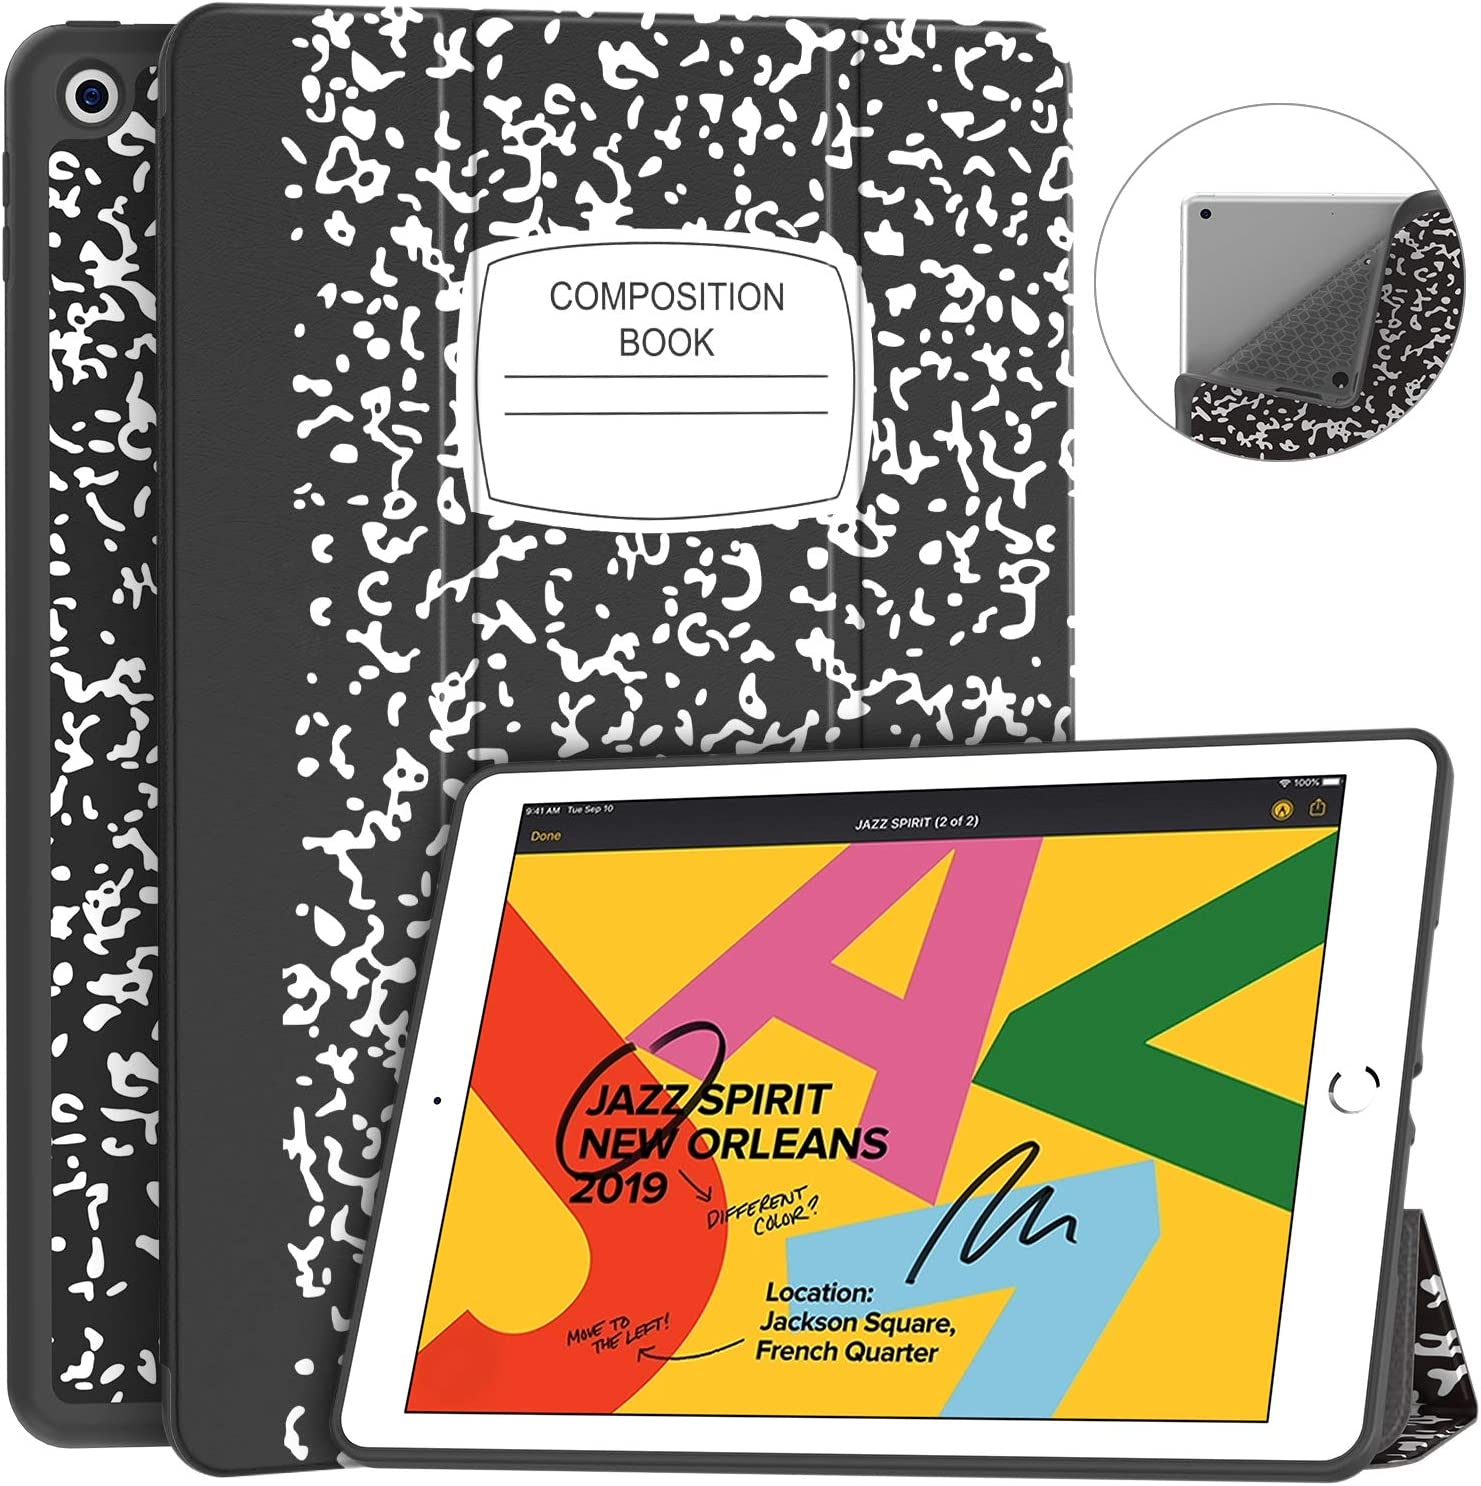 Soke iPad 8th Generation Case 2020/7th Generation Case 2019, Fabric-Like Texture Smart Case Shockproof Soft TPU Back Cover with Auto Sleep/Wake for New Apple iPad 10.2 Inch Case, Book Black